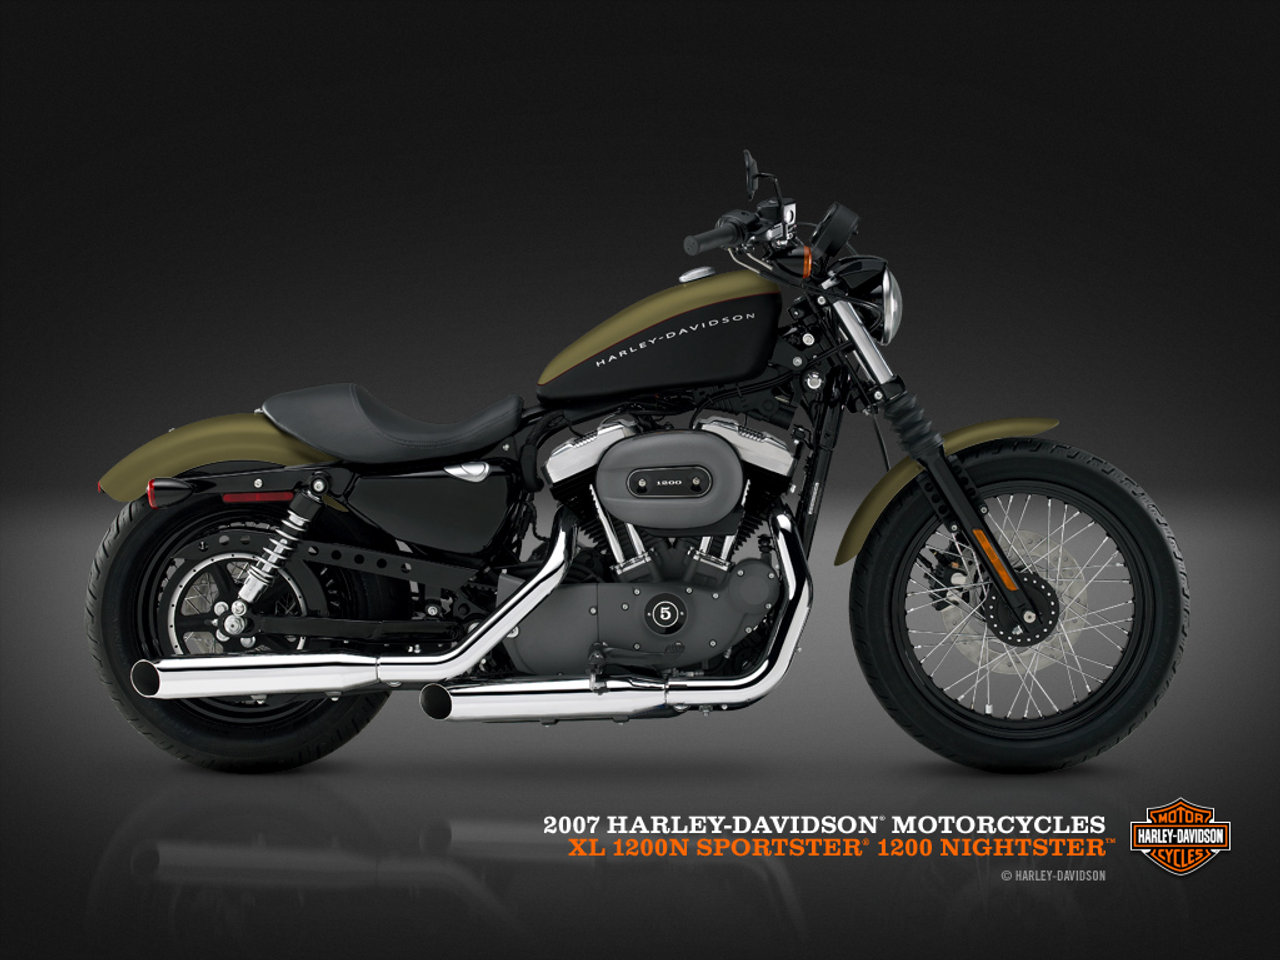 Harley Davidson Sportster Wallpaper 7414 Hd Wallpapers in Bikes 1280x960